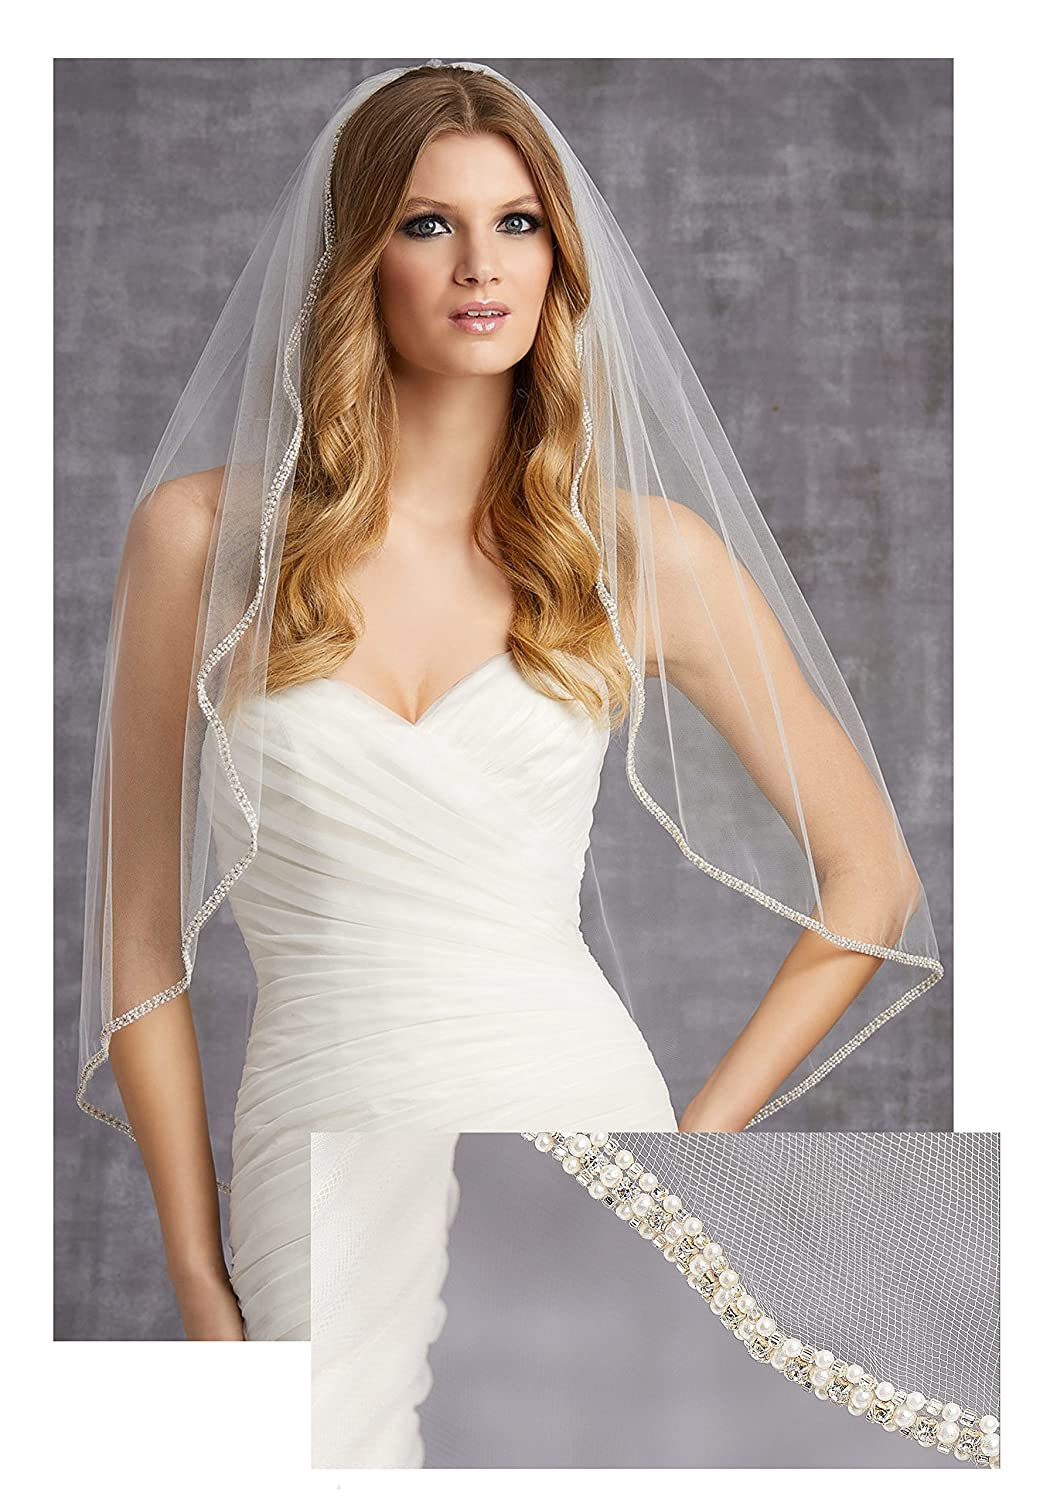 "Gogh 3 Colors Single-Tier 36"" Fingertip Length Veil Edged with Pearls, Bugle Beads, and Rhinestones VL-1017"